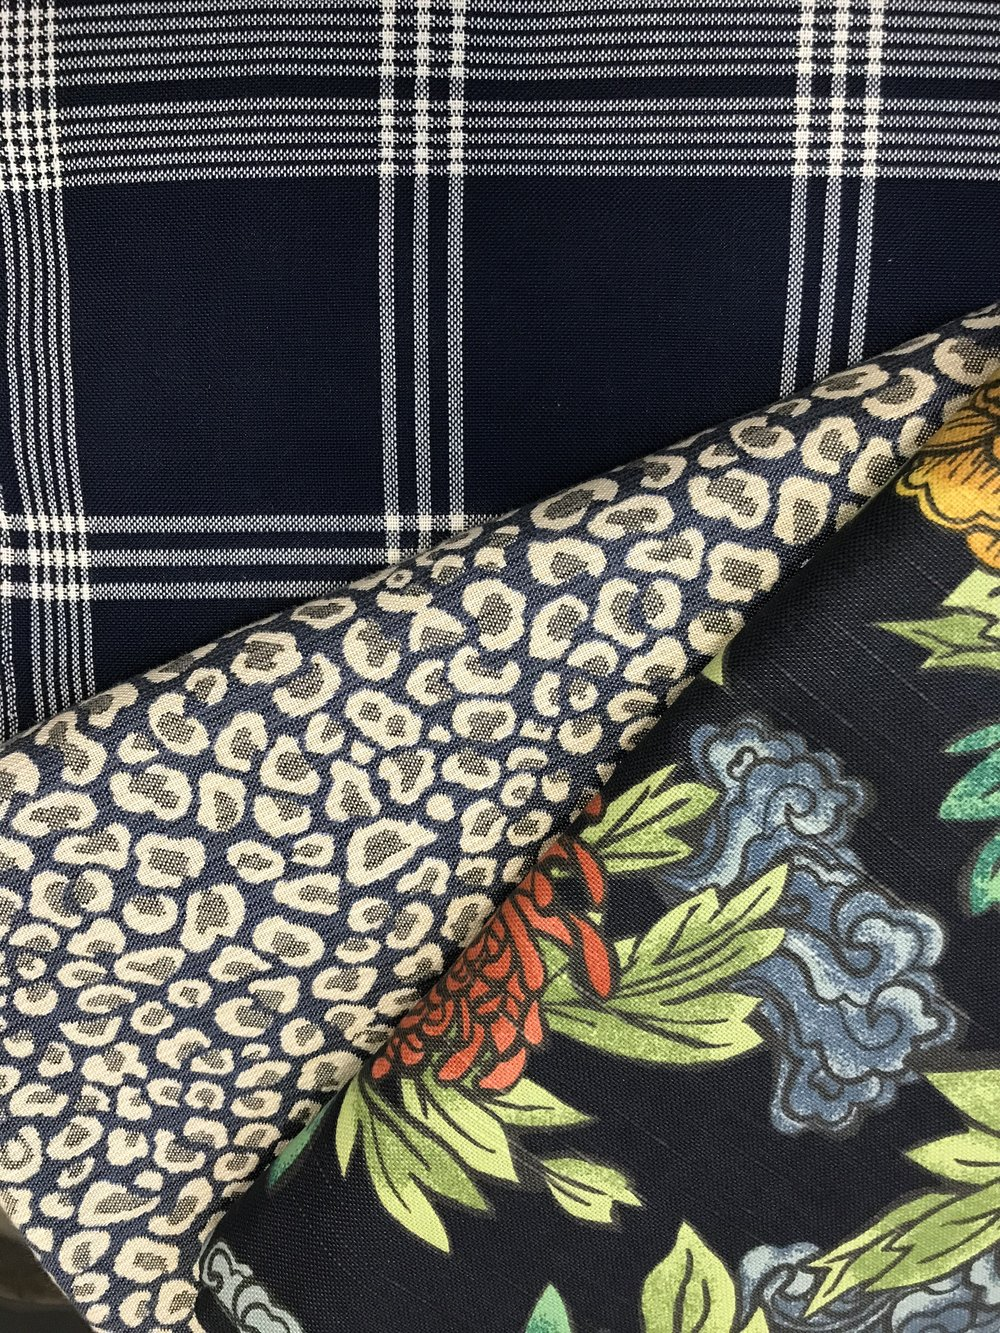 CURRENT AVAILABLE FABRICS